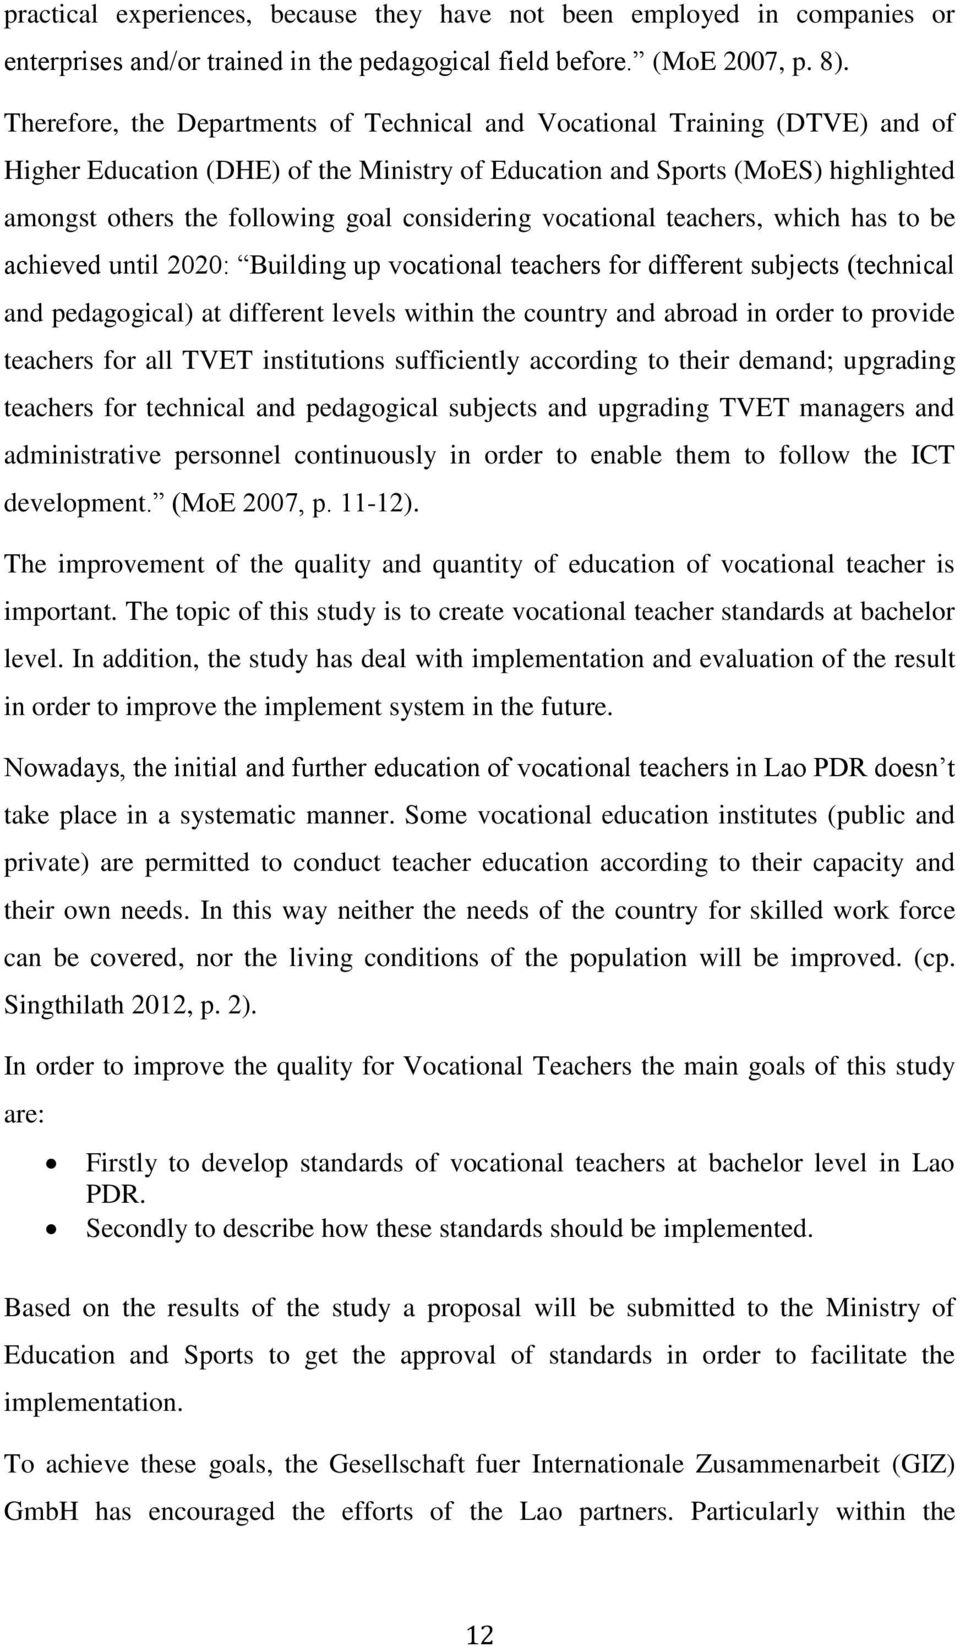 considering vocational teachers, which has to be achieved until 2020: Building up vocational teachers for different subjects (technical and pedagogical) at different levels within the country and